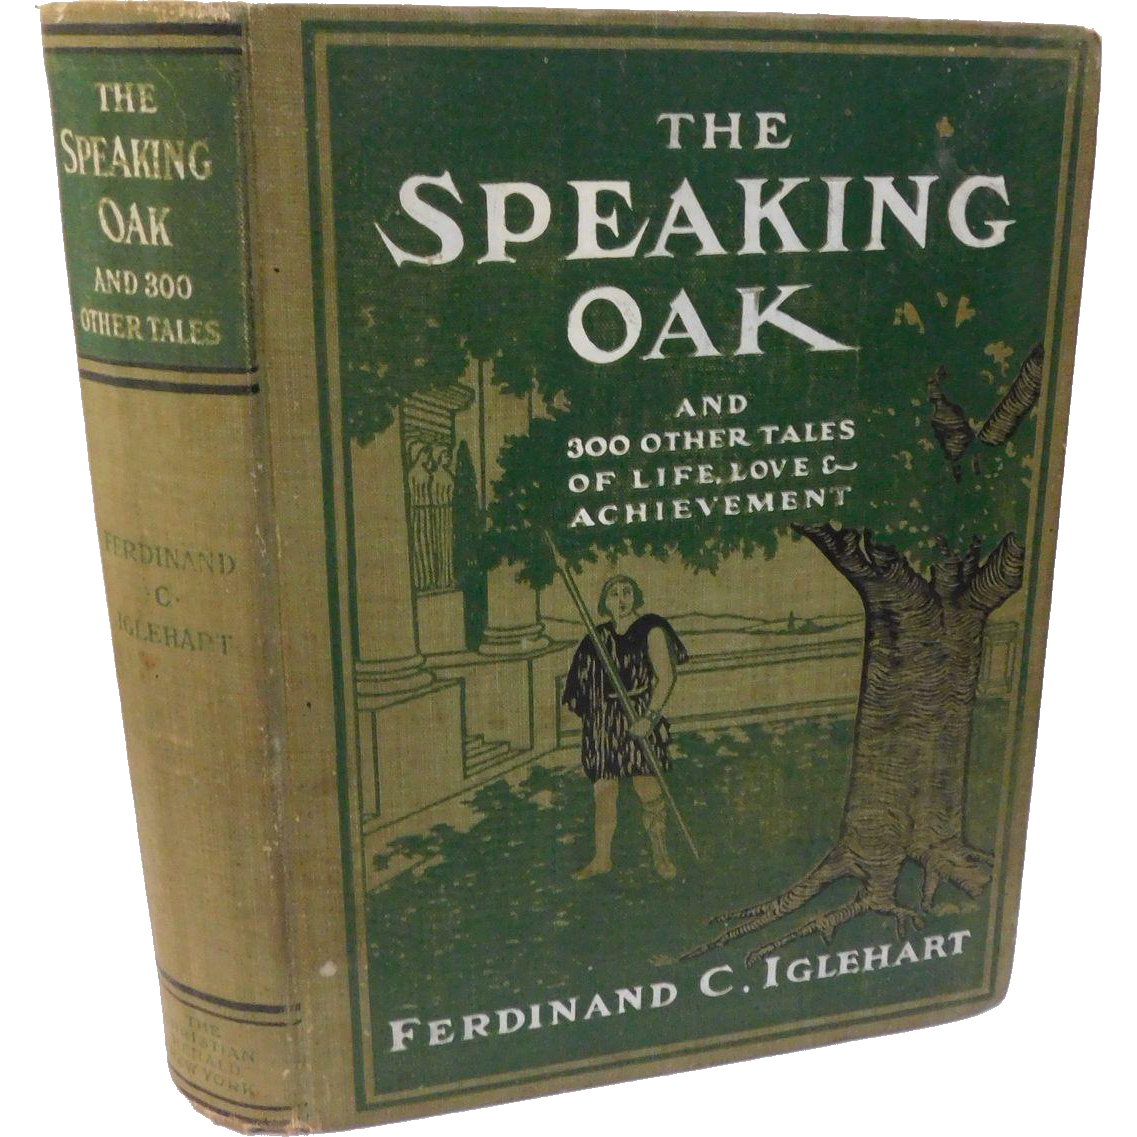 1902 Victorian Book The Speaking Oak 300 Tales of Life Love Achievement Illustrated Antique Patriotic Motivational Character Building Inspirational